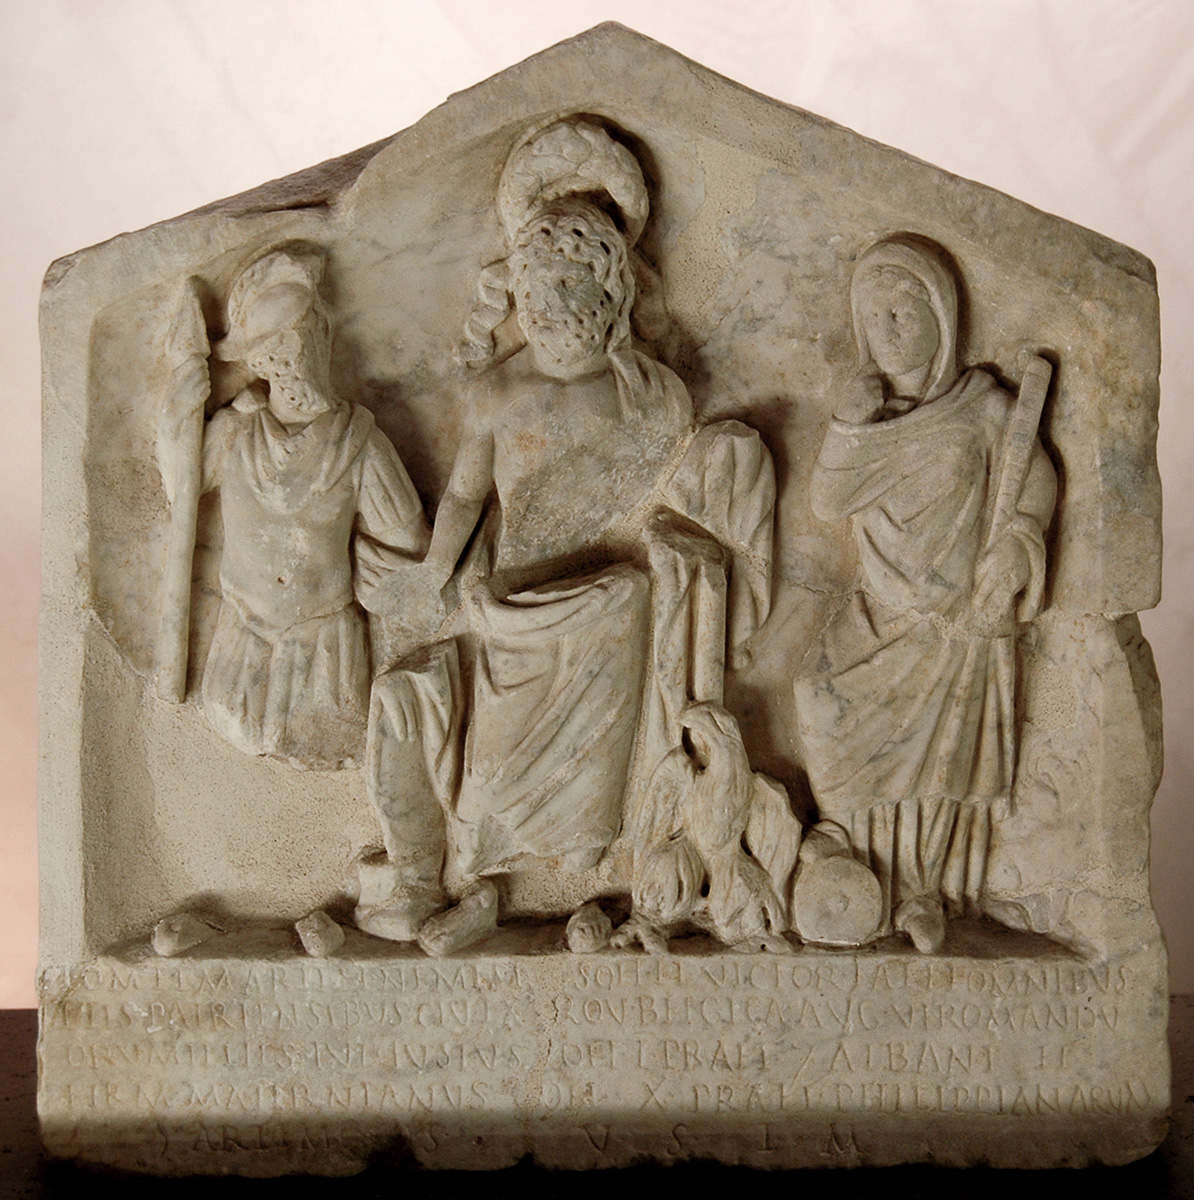 Relief dedicated to the gods of fatherland by pretorians of Gallia Belgica. Marble. 246 CE. Inv. No. NCE 477. Rome, Capitoline Museums, Palazzo Senatorio